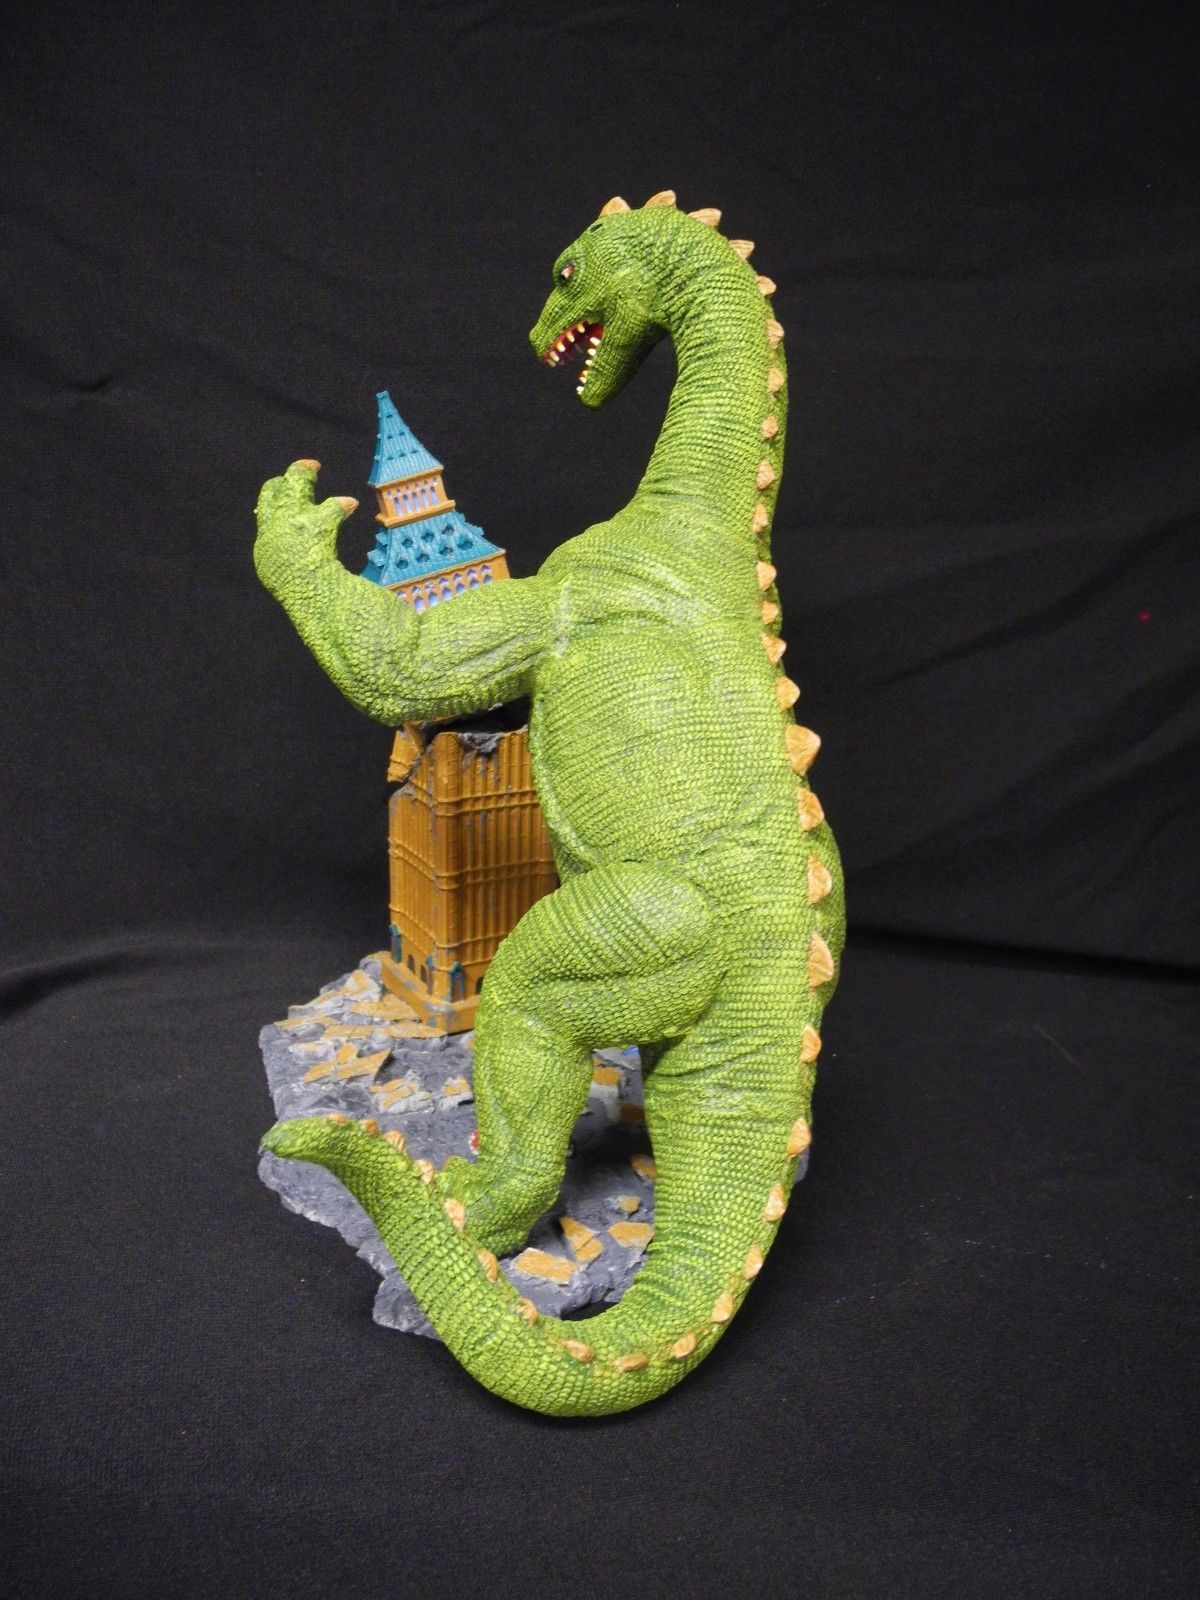 Details about THE GIANT BEHEMOTH SOLID RESIN MODEL/DIORAMA BUILT AND